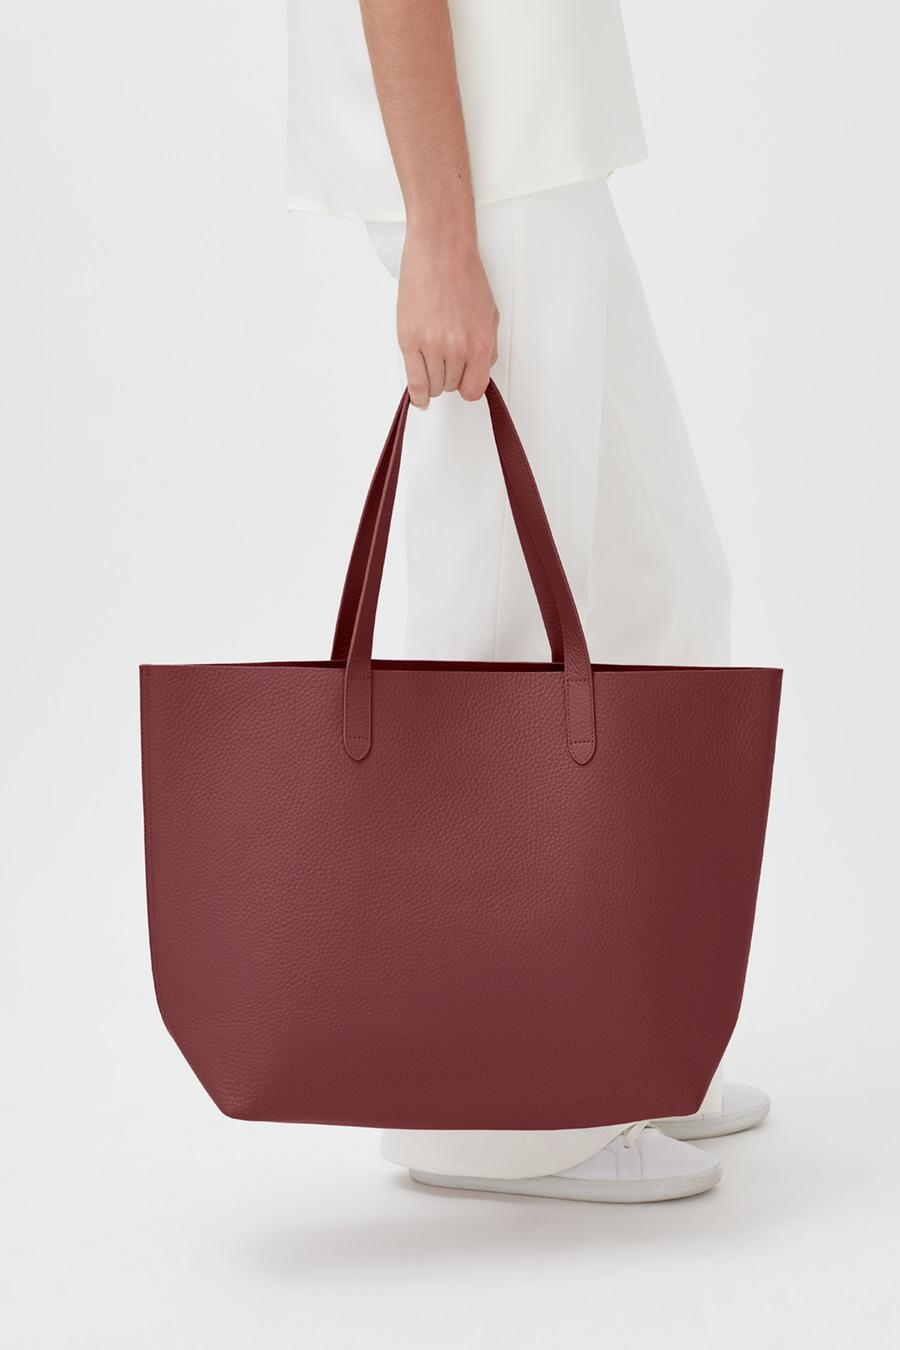 Women's Classic Leather Tote Bag in Merlot Painted   Pebbled Leather by Cuyana 4